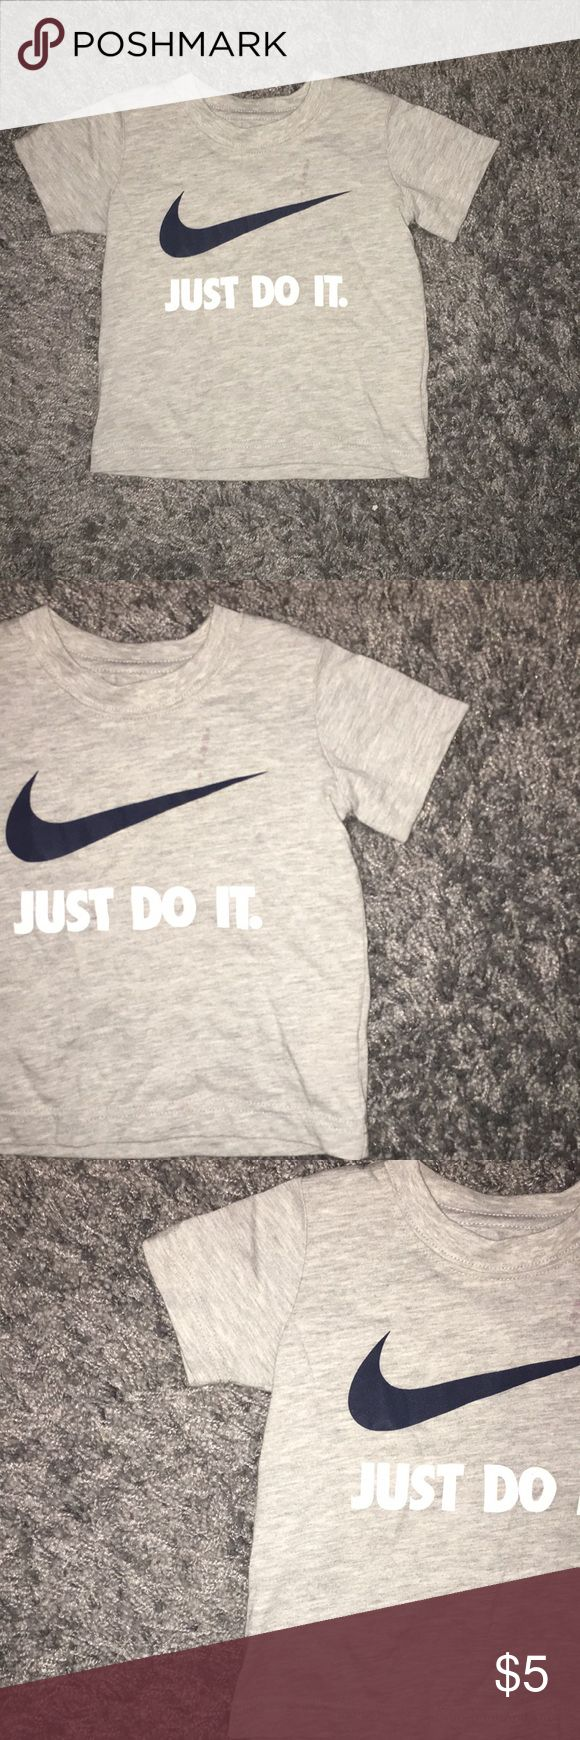 Grey Boys Nike short sleeve tee Has a small stain in the front Nike Shirts & Tops Tees - Short Sleeve